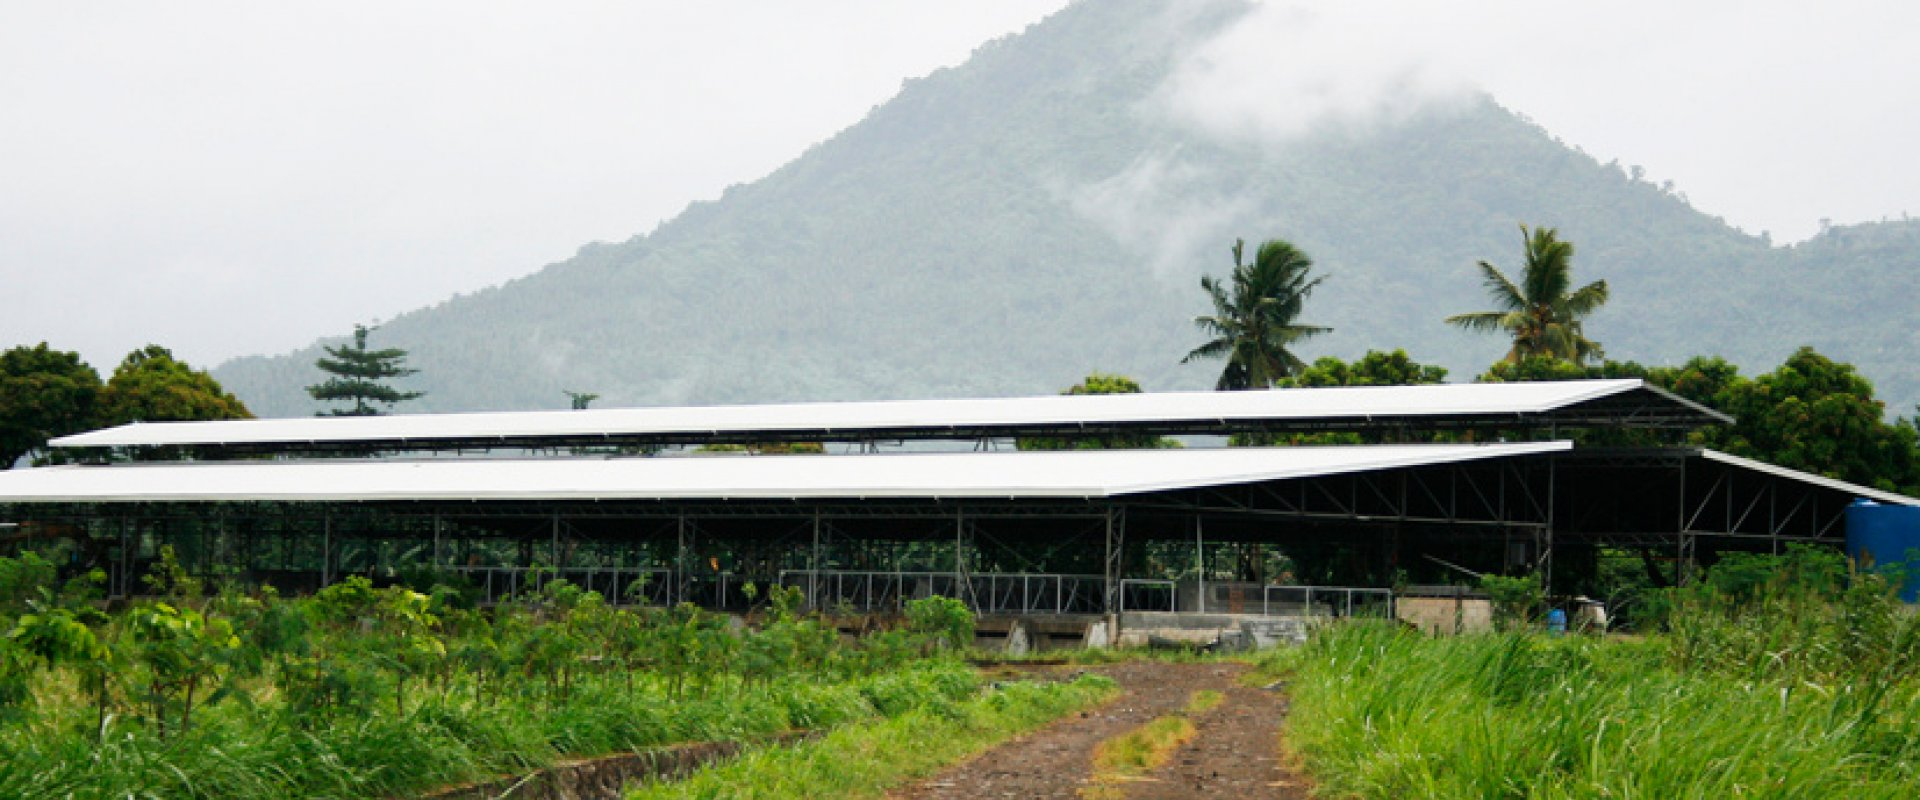 Our farm is perfectly nestled at the foothills of Mt. Banahaw with lush green rural terrain